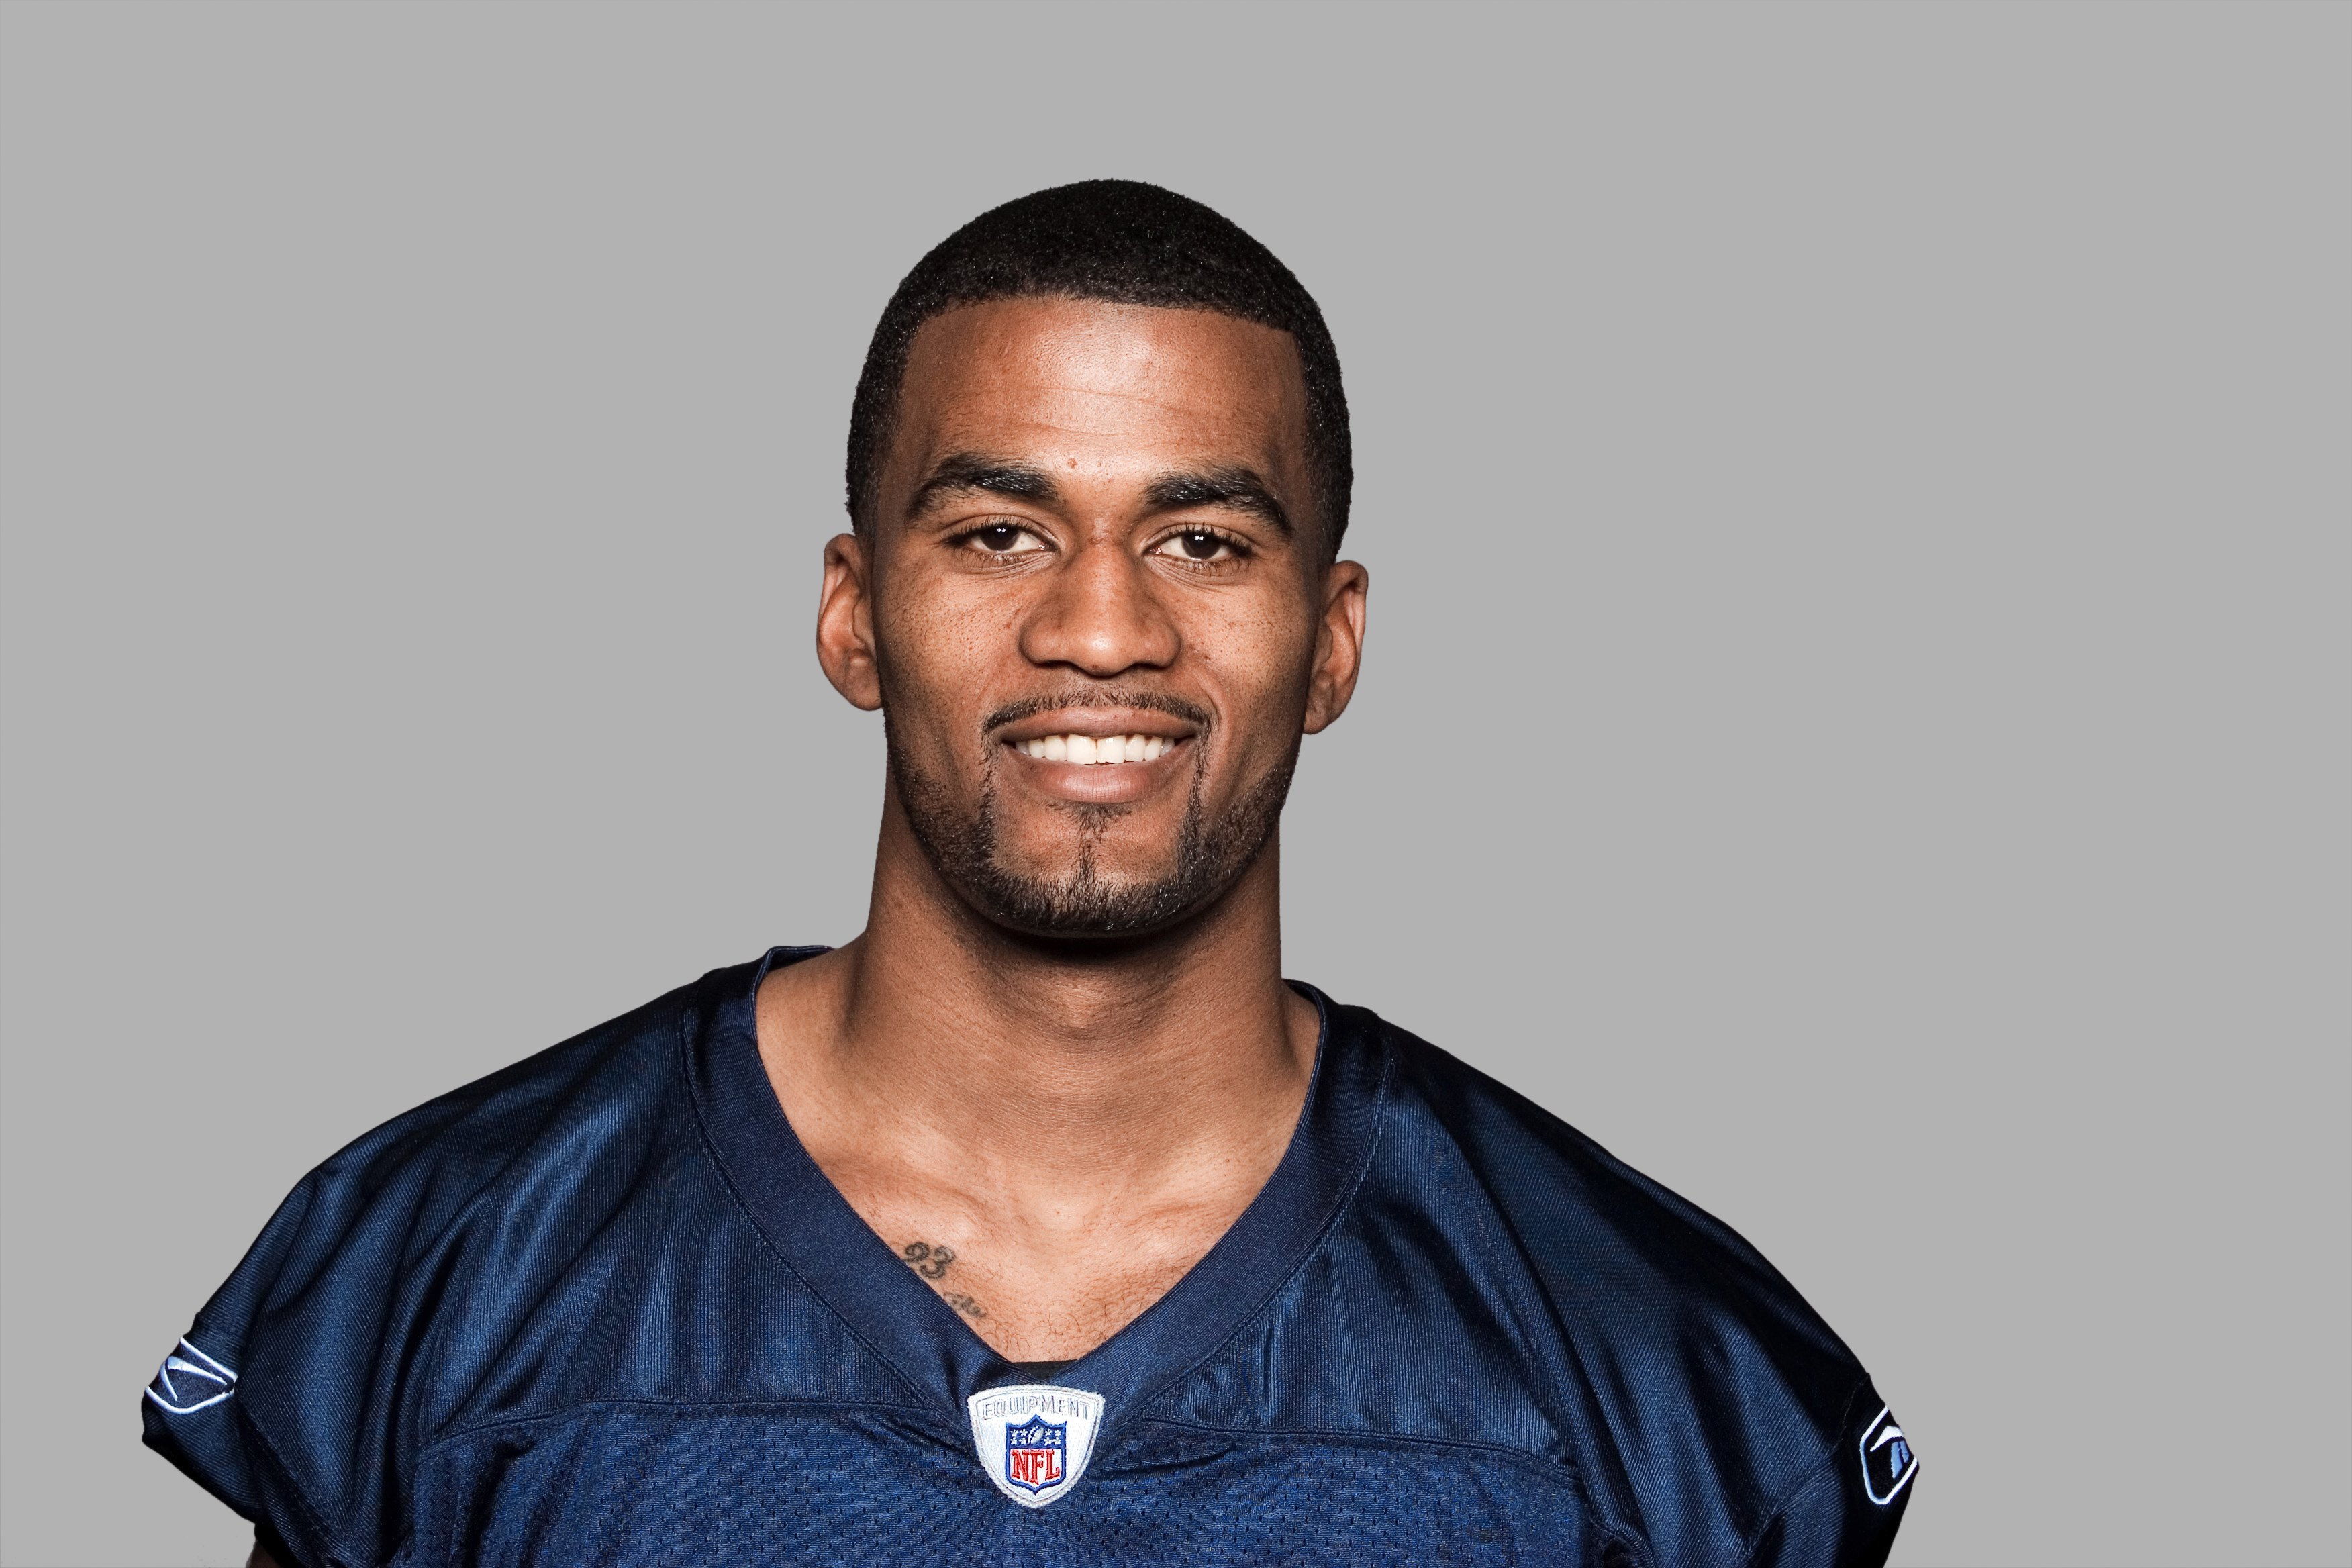 Body of former NFL player James Hardy found in Indiana river